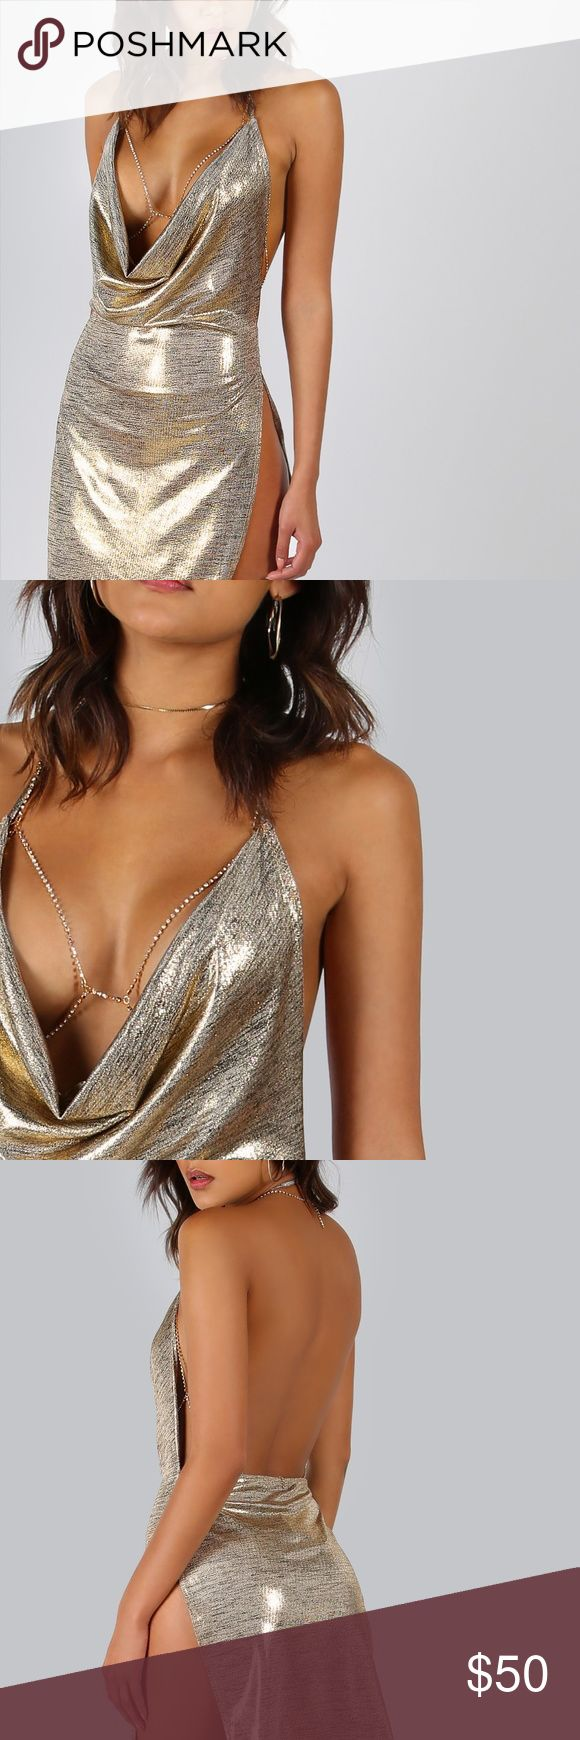 Sexy mini dress Very sexy metallic mini dress with slit on side. This dress features a thin cozy material but not see through and a plunging v-neck very comfy & stretchy 94% polyester 6% spandex body jewelry is not included. Dresses Mini